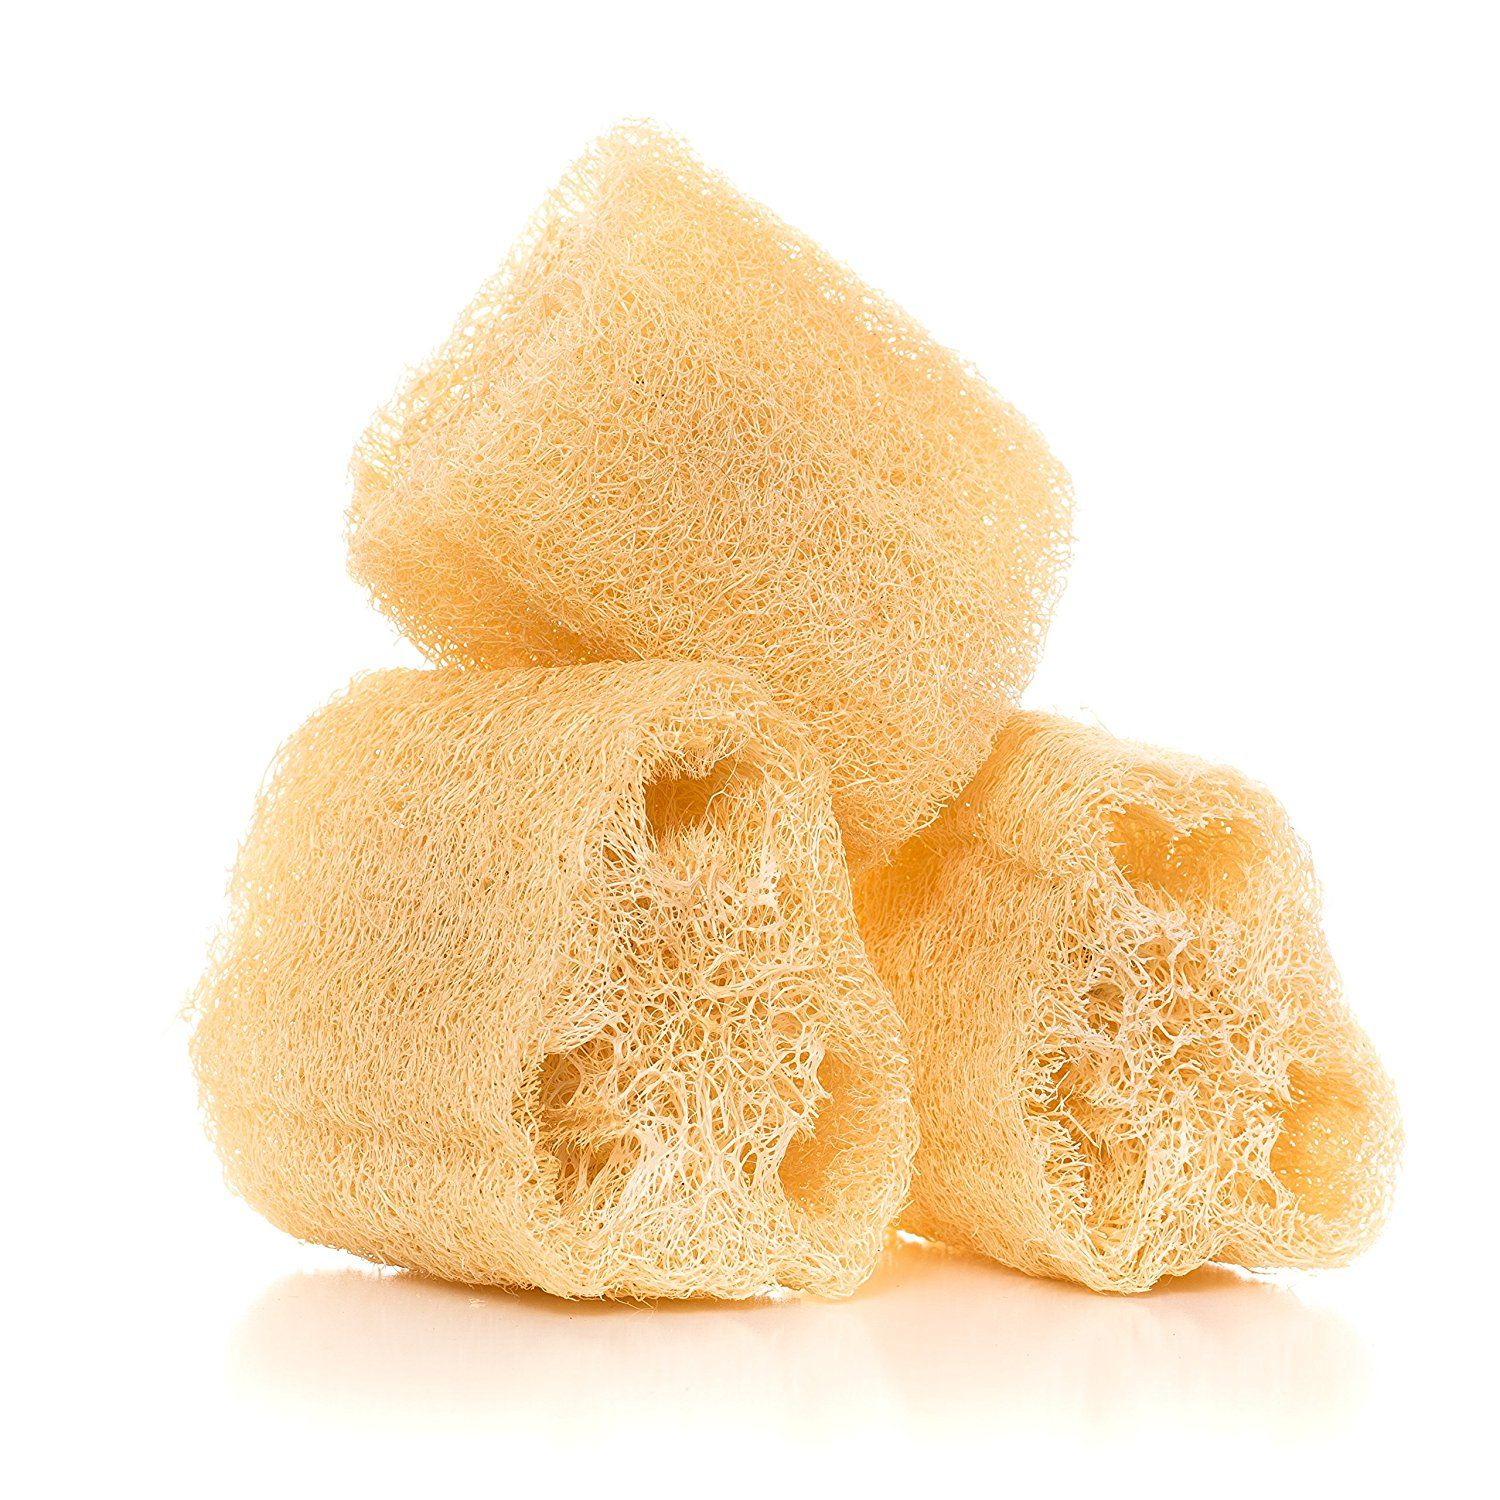 Classic Loofah Body Sponge And Exfoliator For Bath Or Shower 3